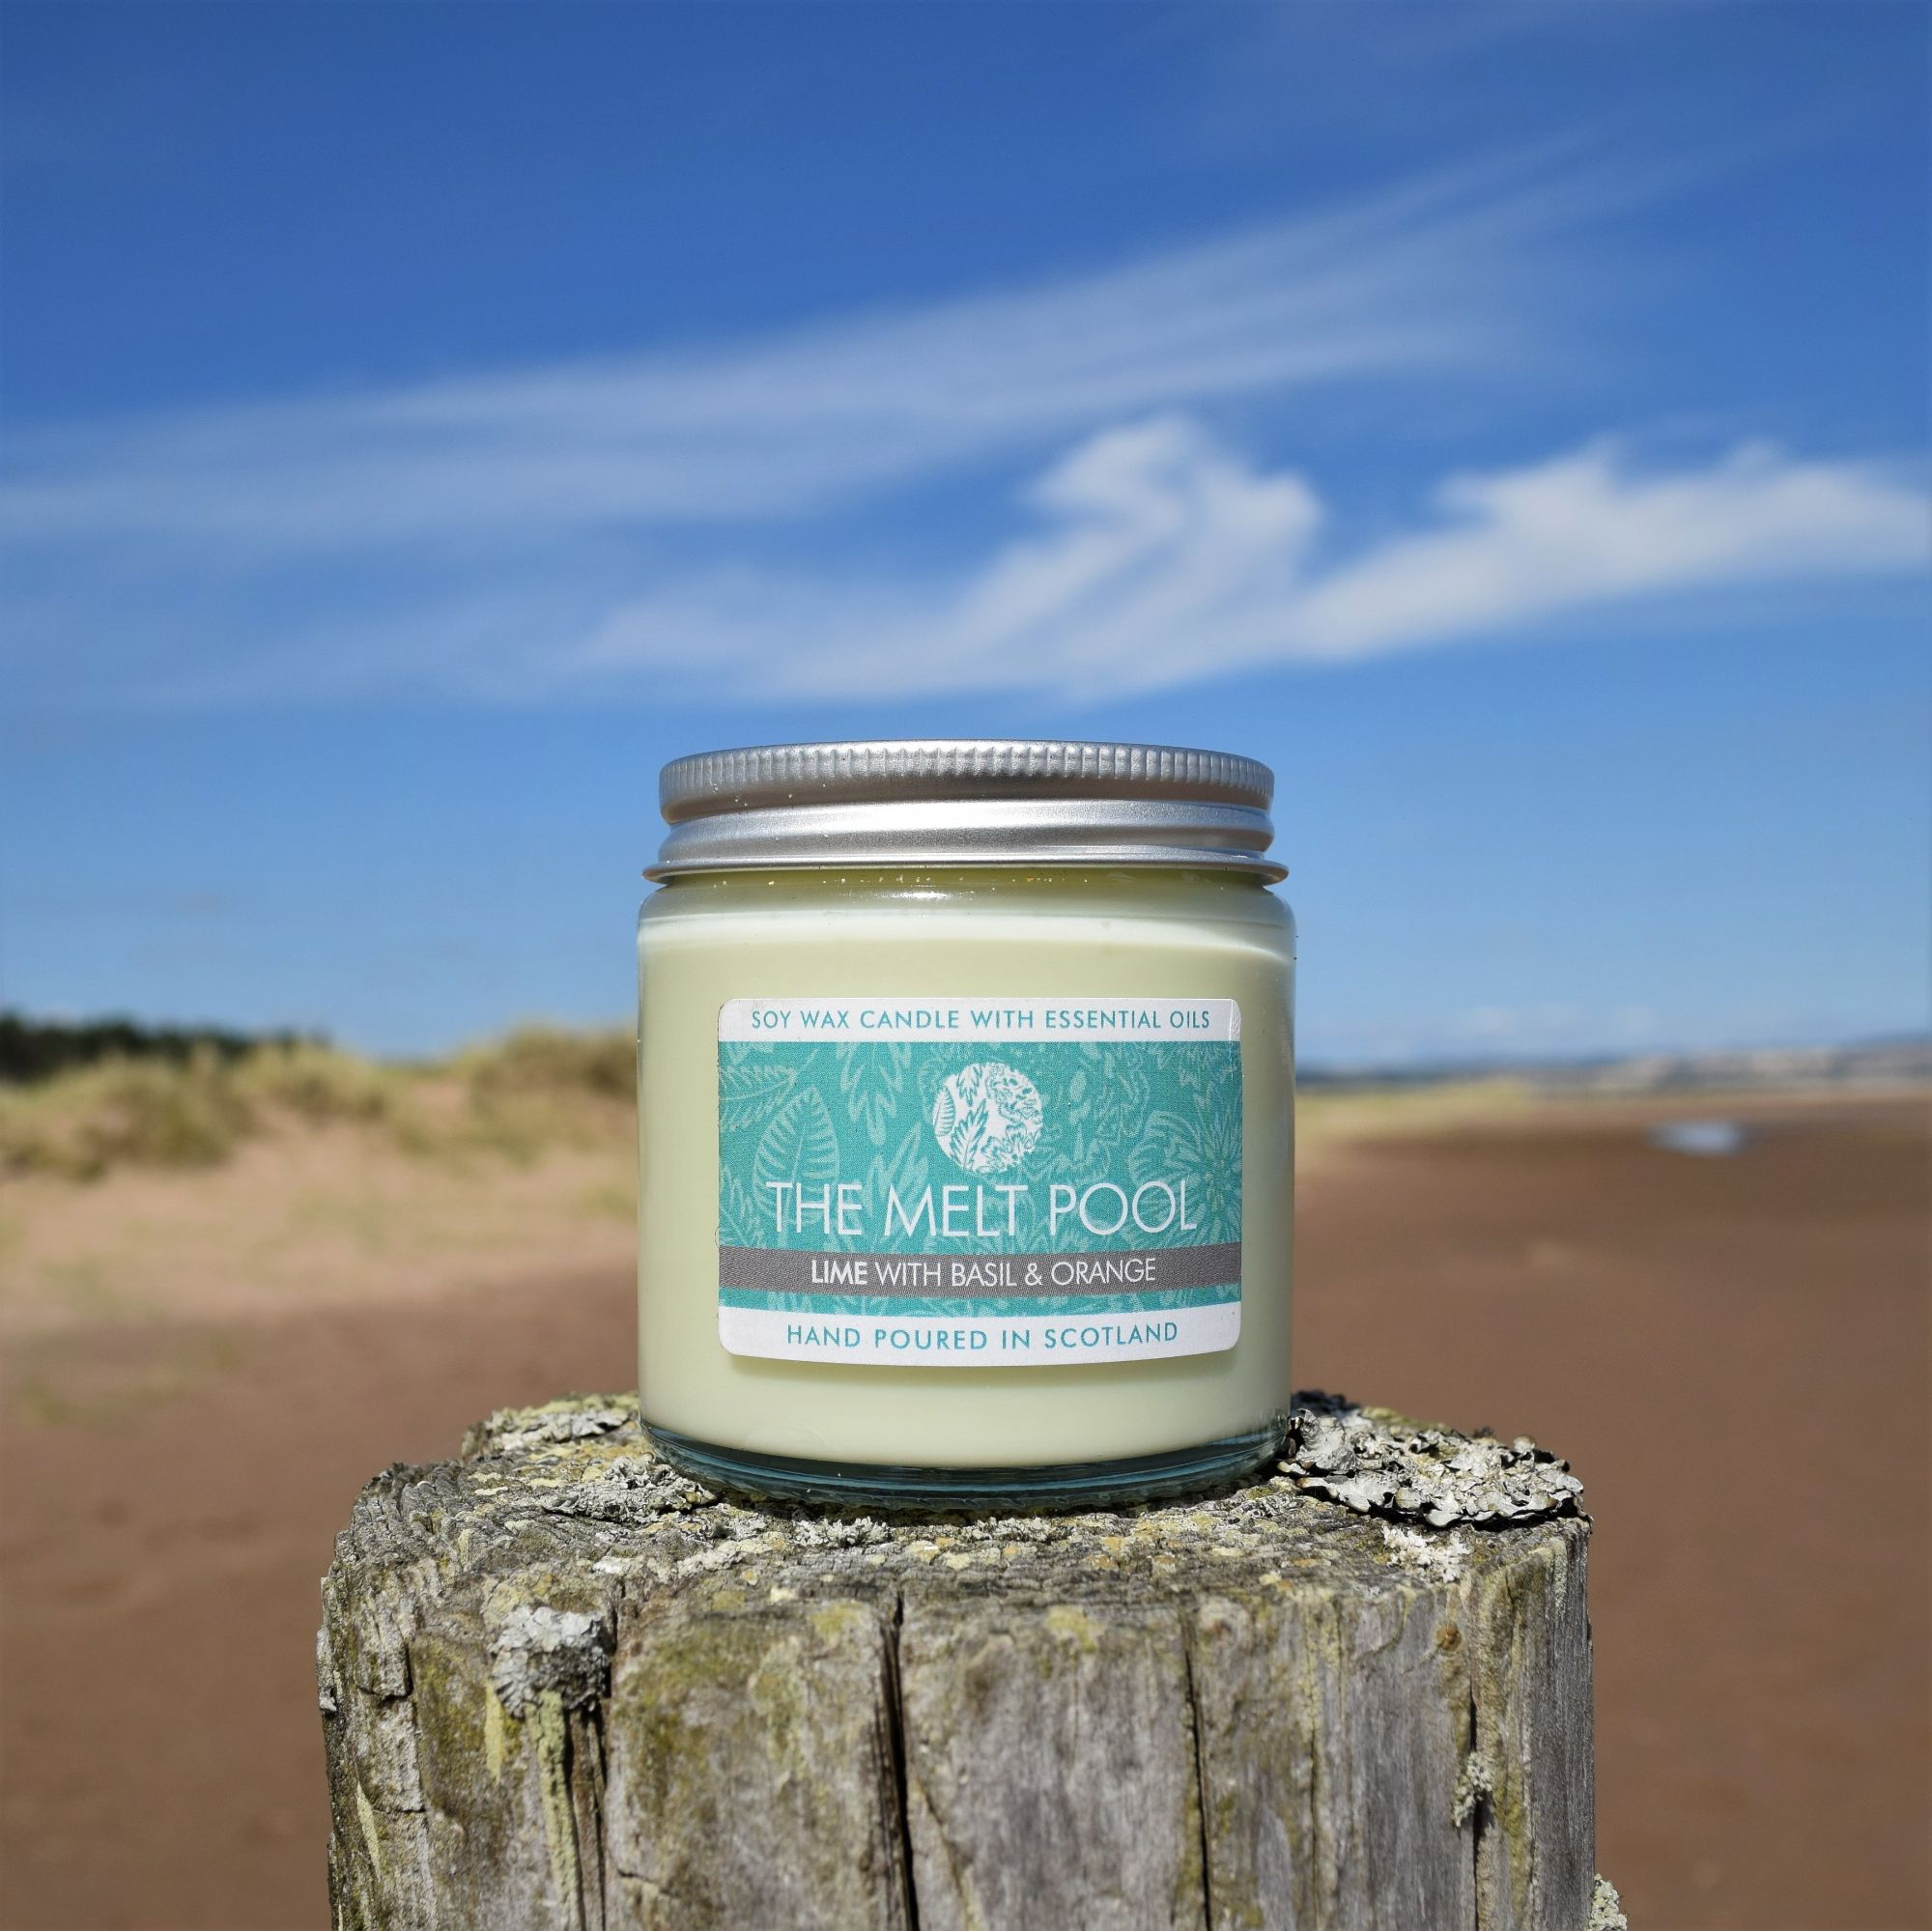 Small Jar Soy Wax Candle Scented with Essential Oils